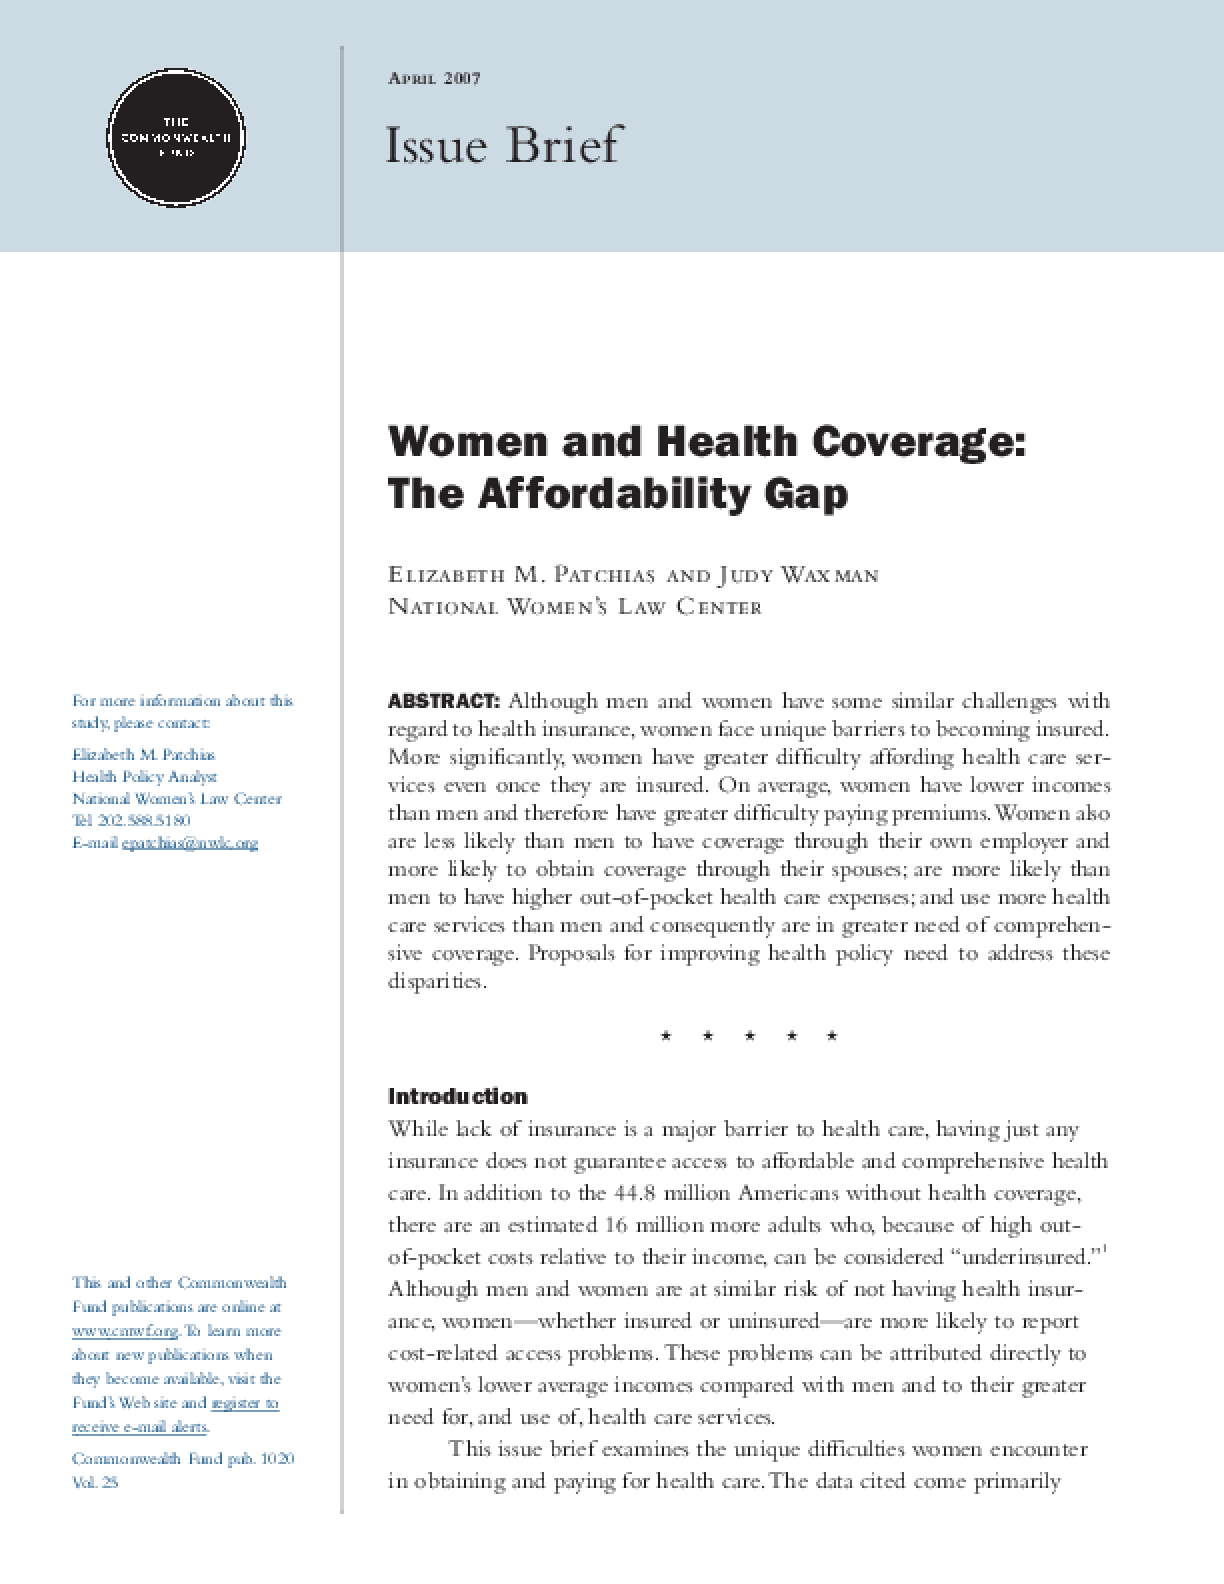 Women and Health Coverage: The Affordability Gap